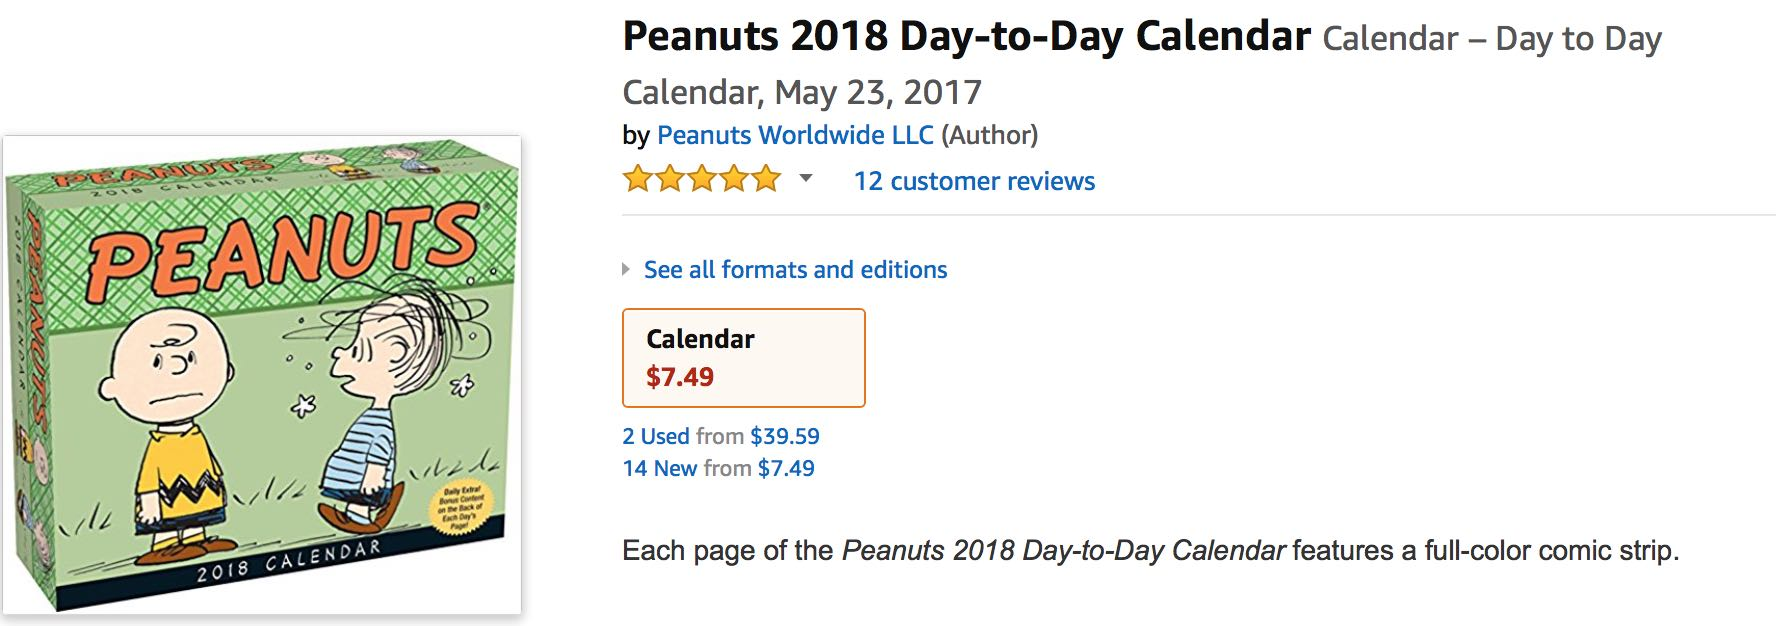 Peanuts 2018 Day-to-Day Calendar, by Peanuts Worldwide LLC. 14 new from $7.49. 2 used from $39.59.